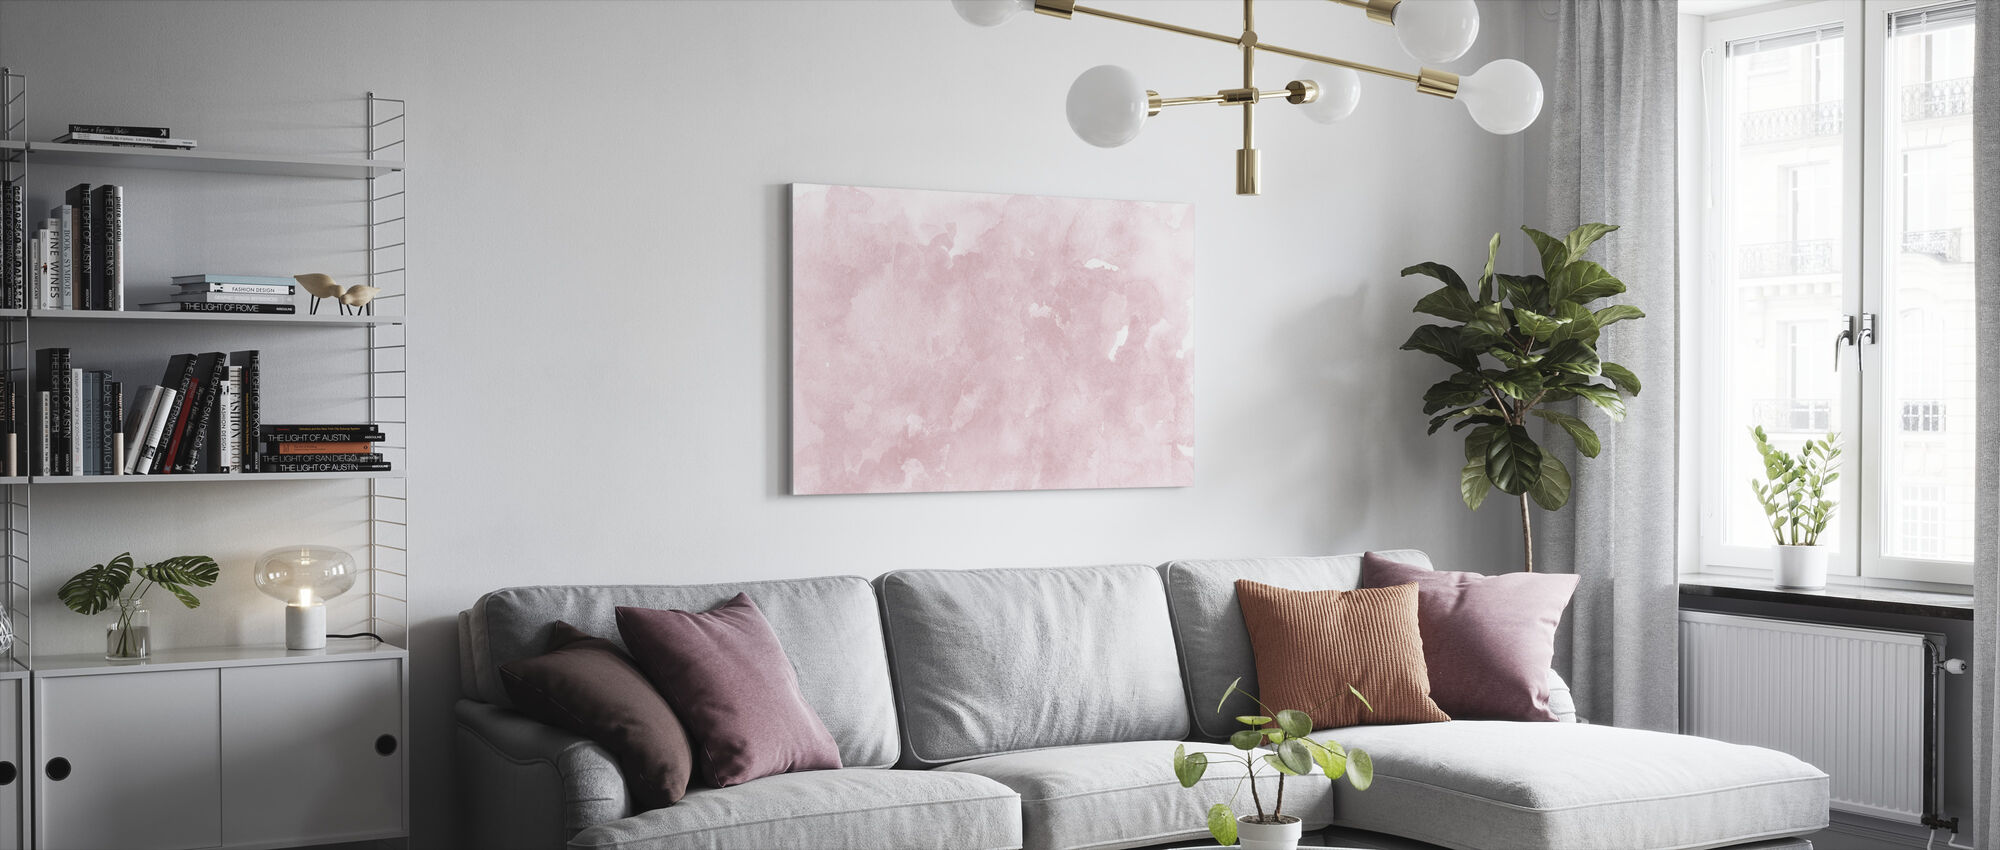 Watercolor Minimalism XI - Canvas print - Living Room